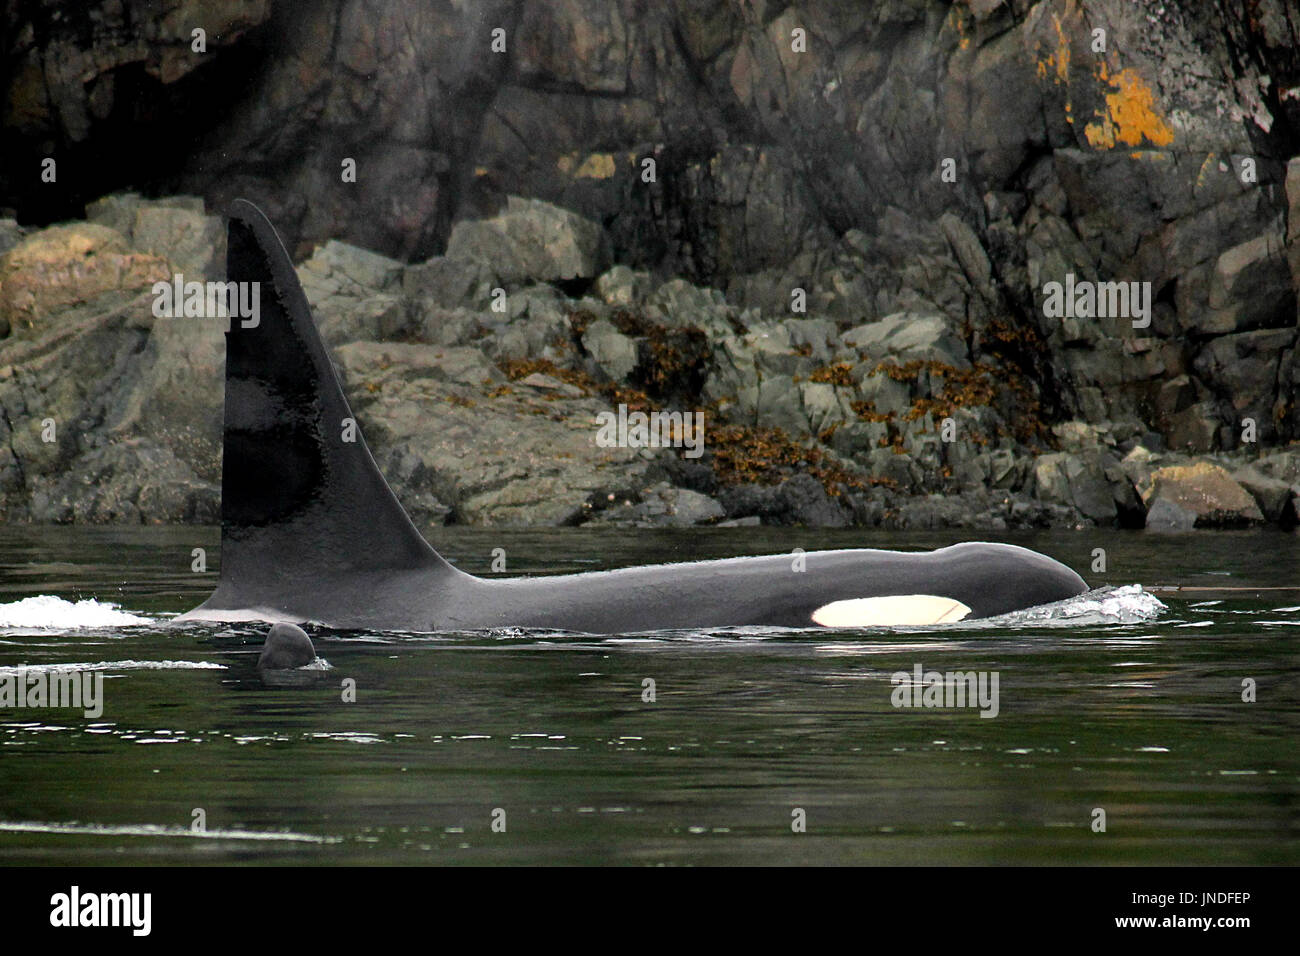 Transient orca whale surfacing near Sonora Island in British Columbia, Canada - Stock Image